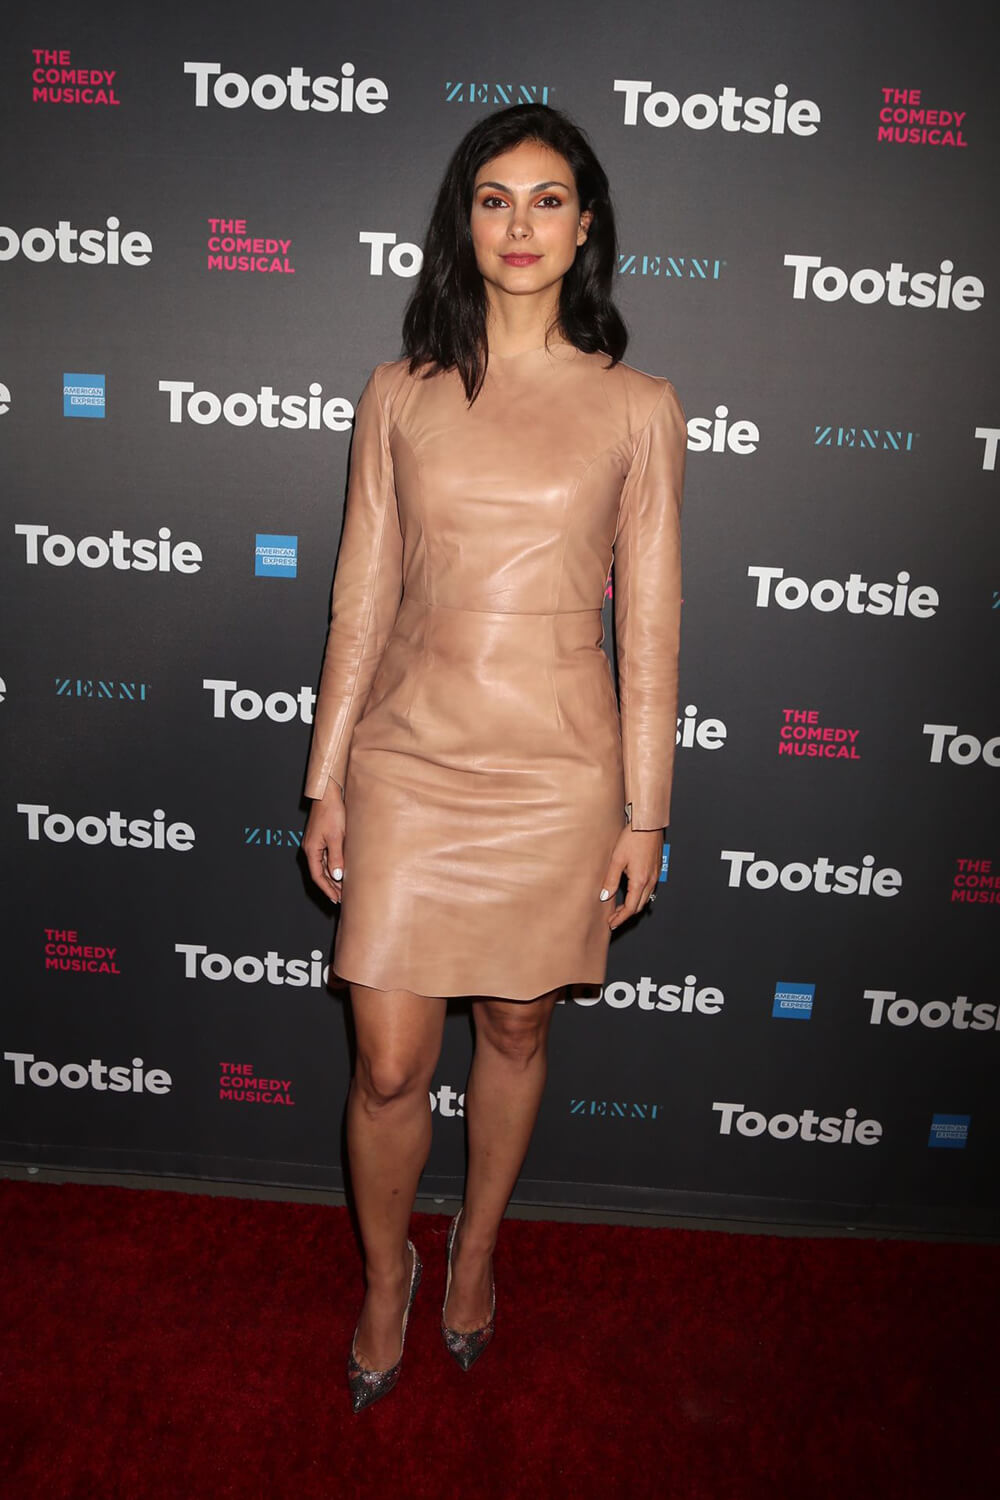 Morena Baccarin attends Tootsie Broadway Play Opening Night at Marquis Theater in New York City | 04